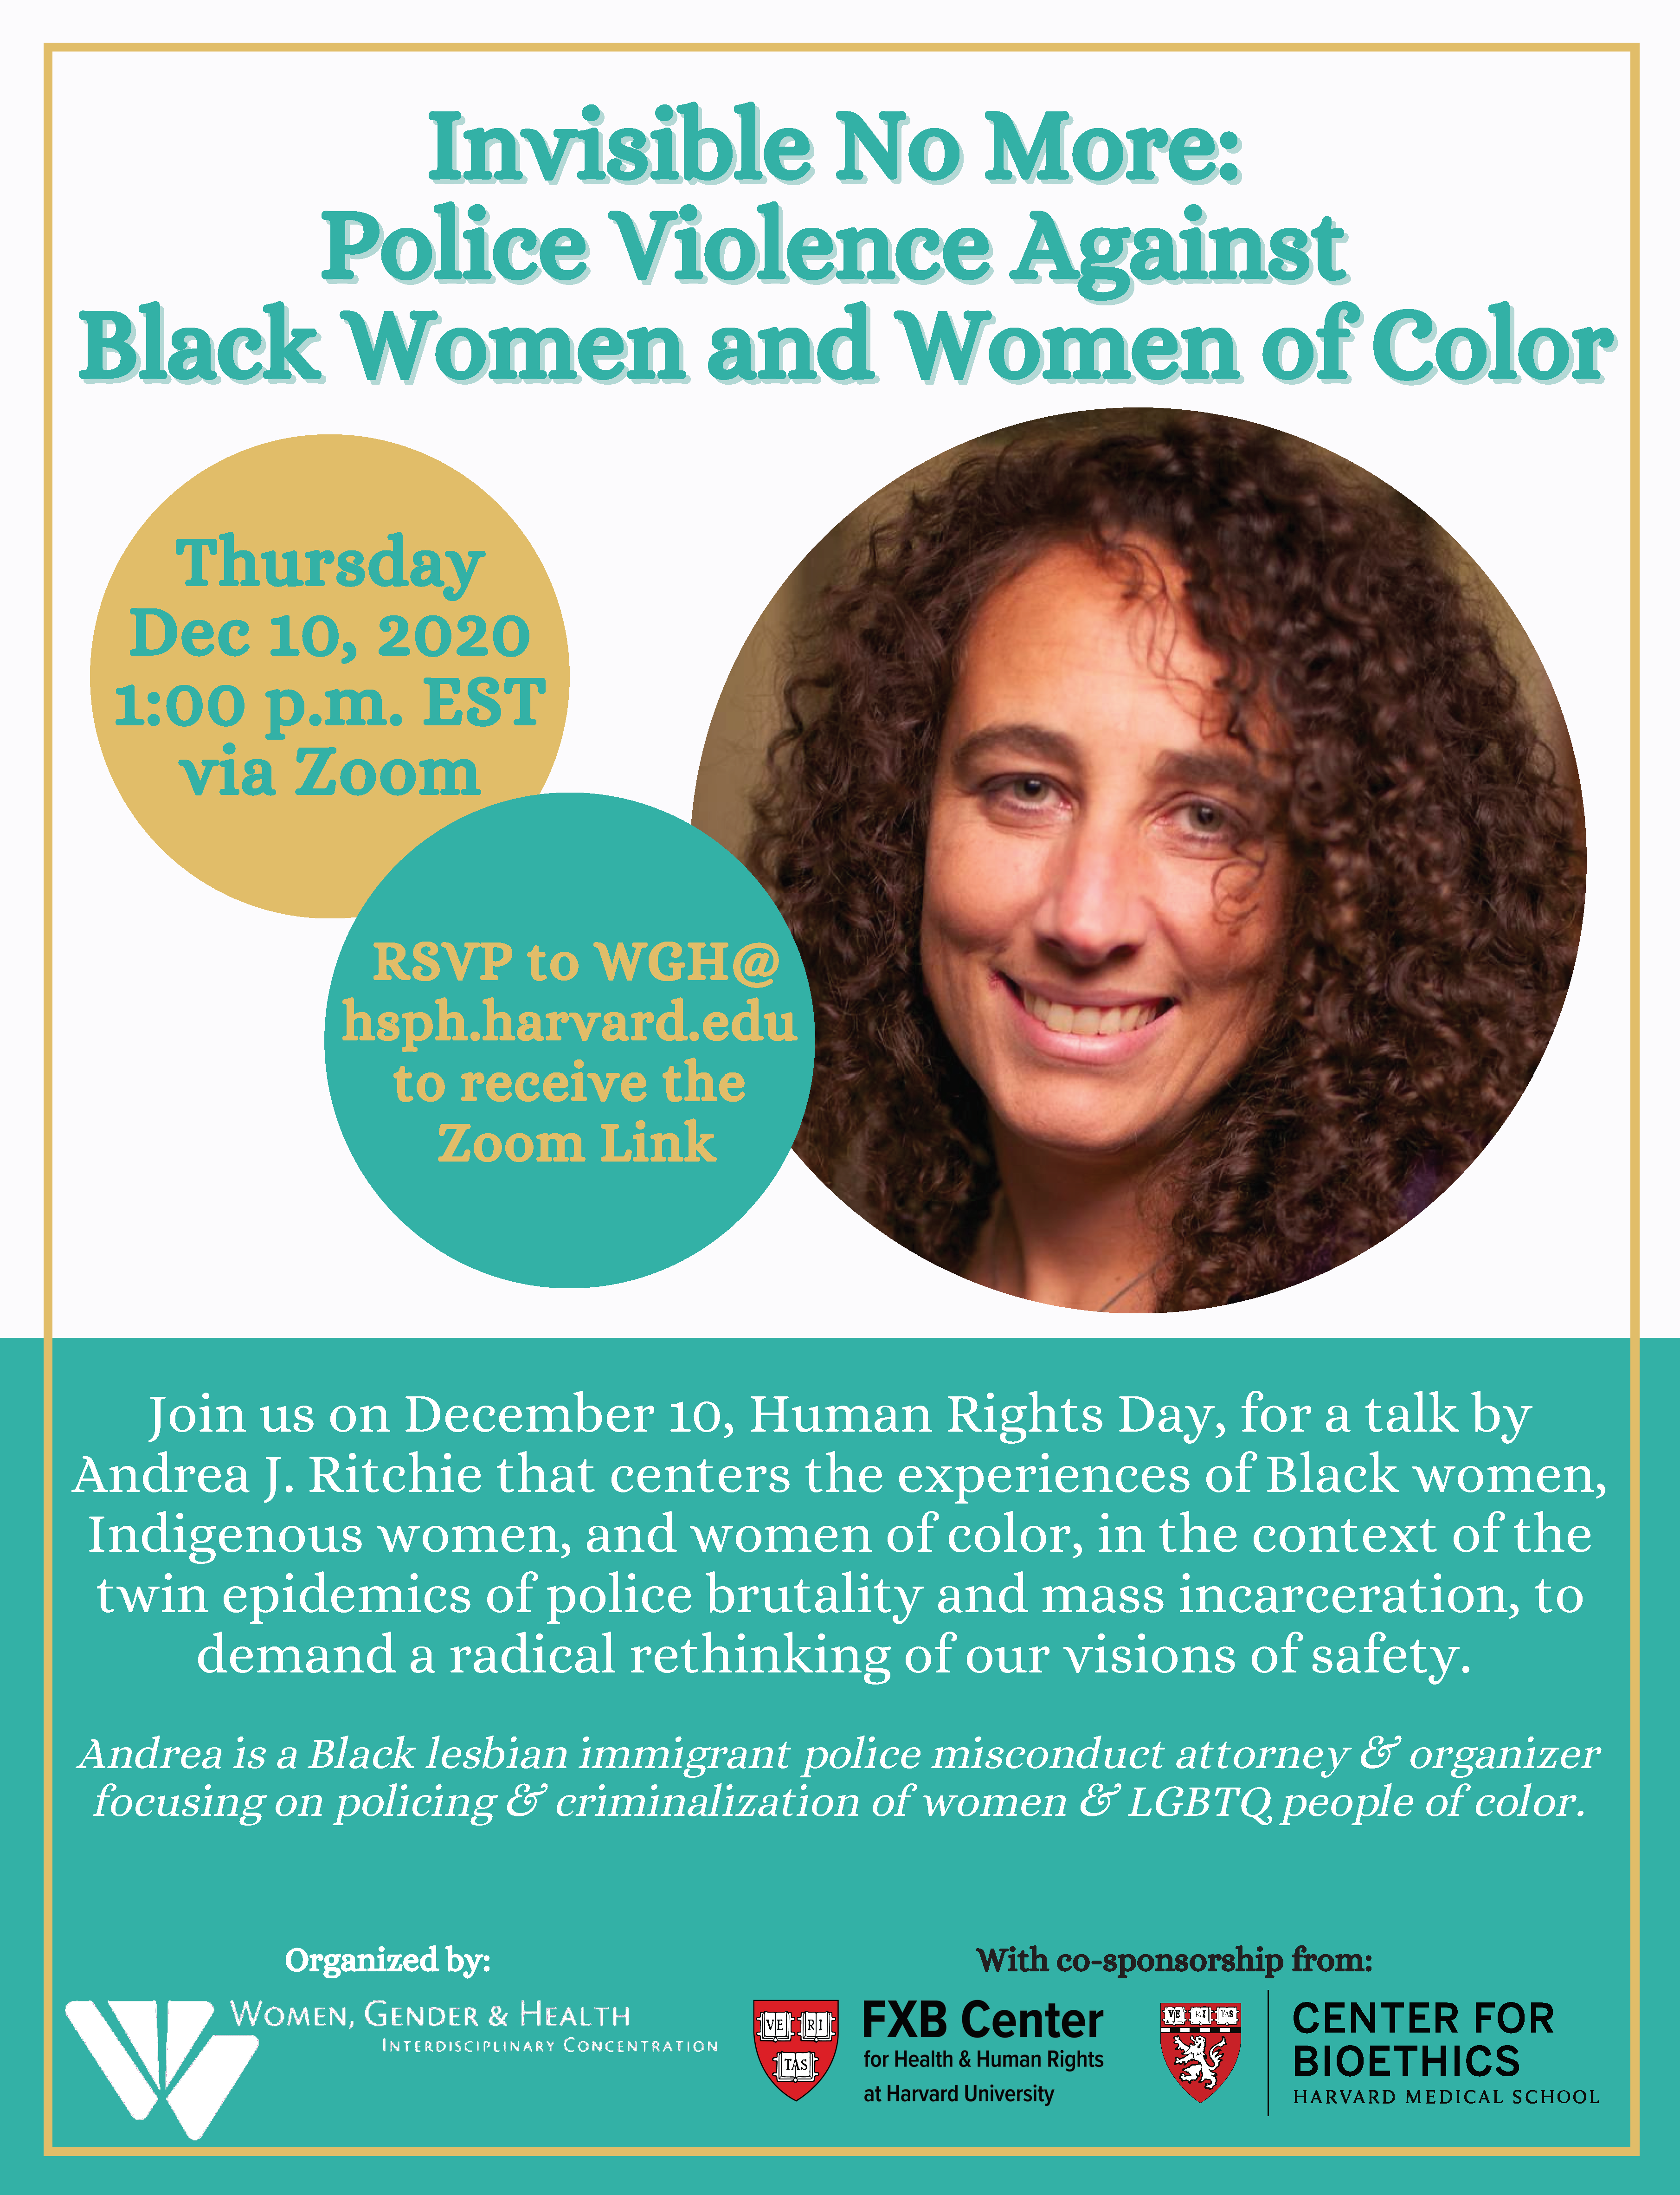 """Event flyer for """"Invisible No More: Police Violence Against Black Women and Women of Color"""" event featuring lawyer Andrea J. Ritchie"""